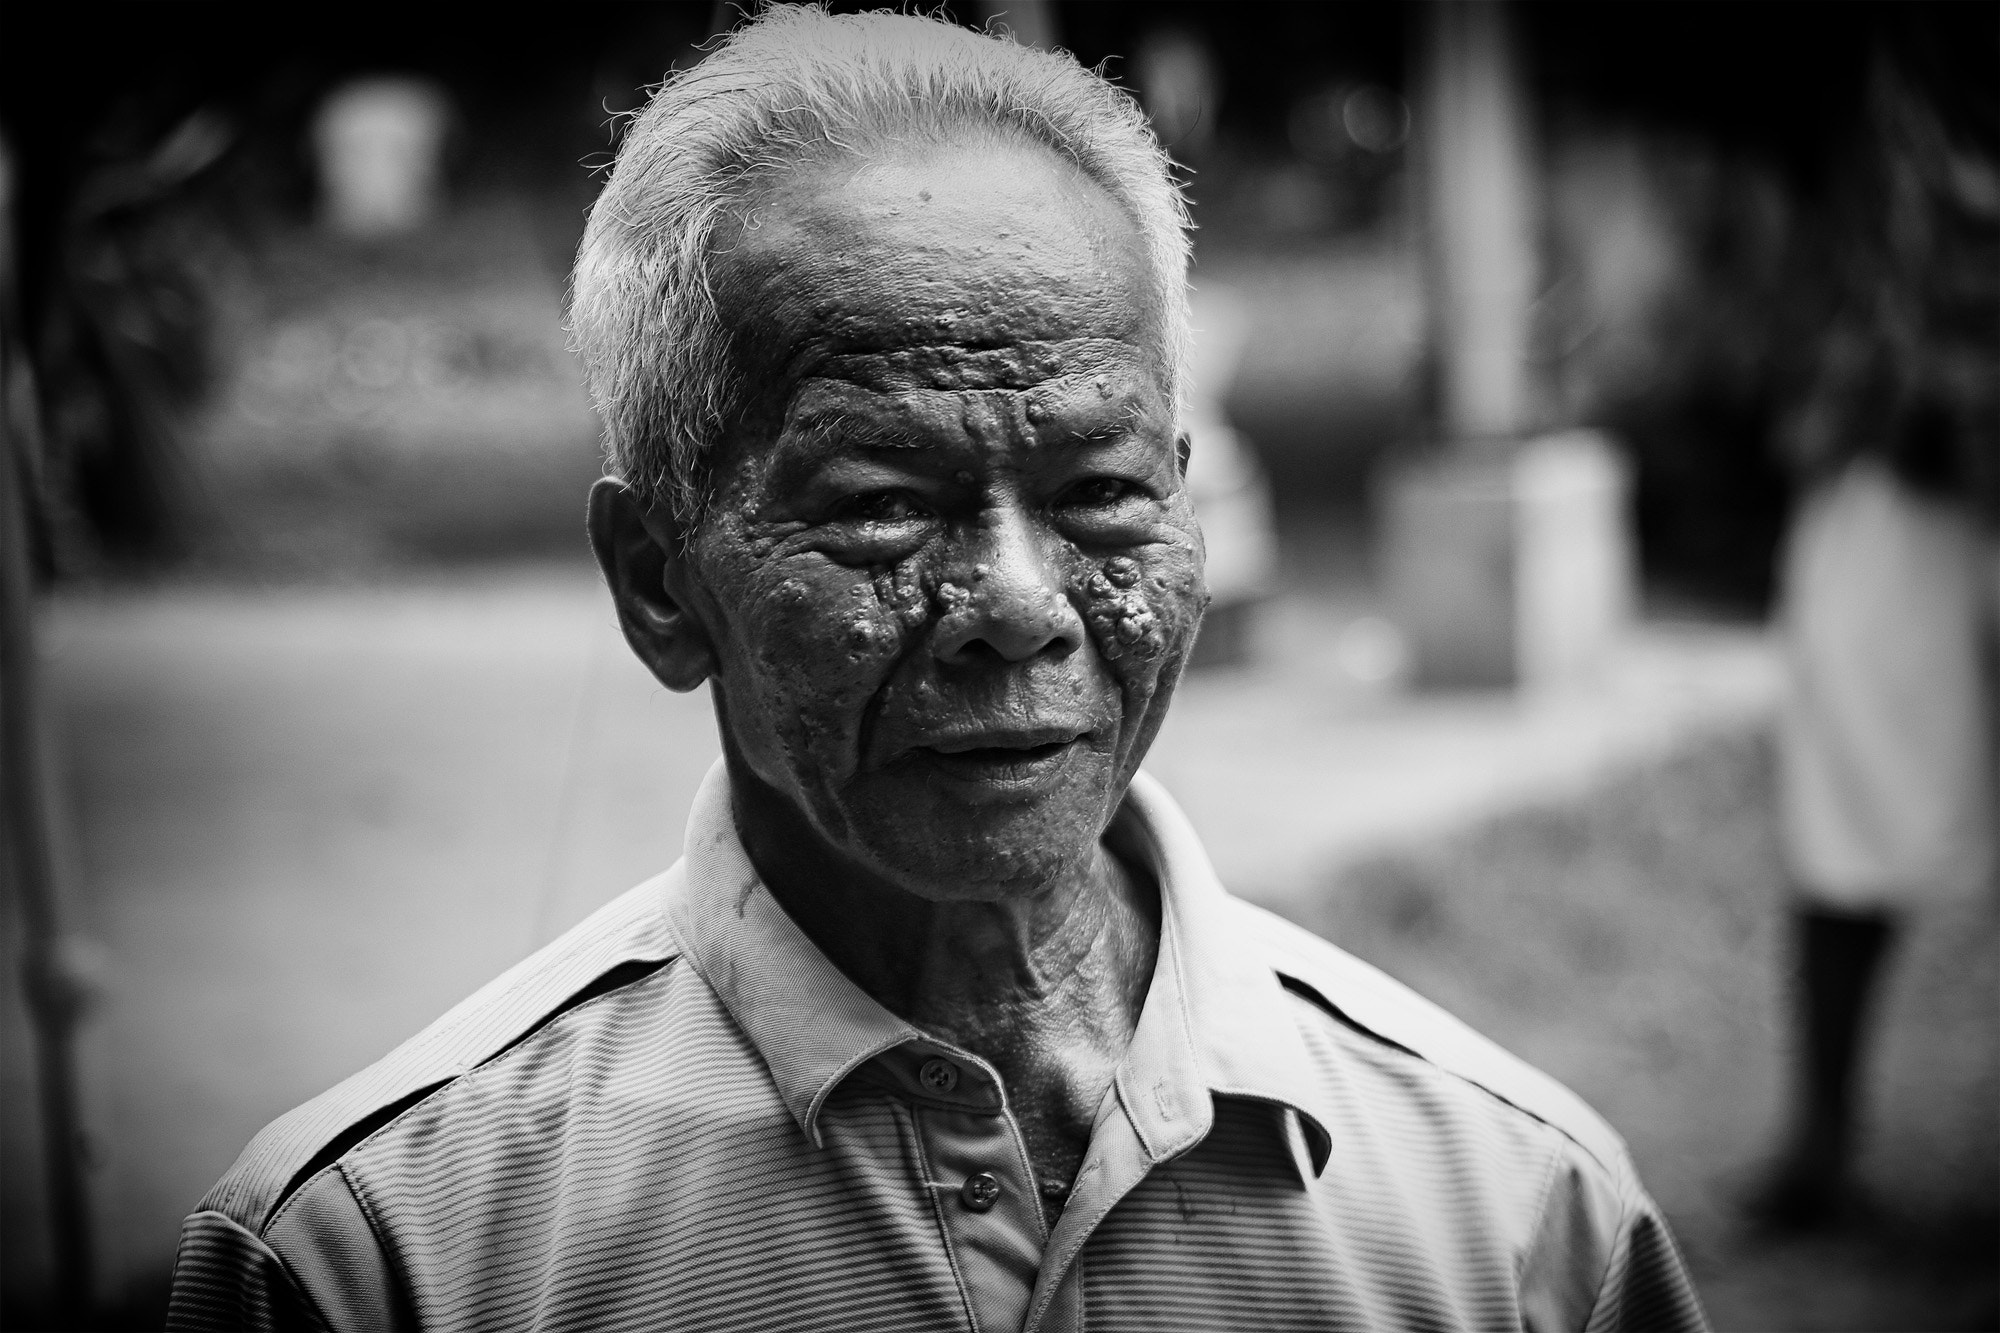 Photograph Ketut Menda by Fabrizio Alessi on 500px